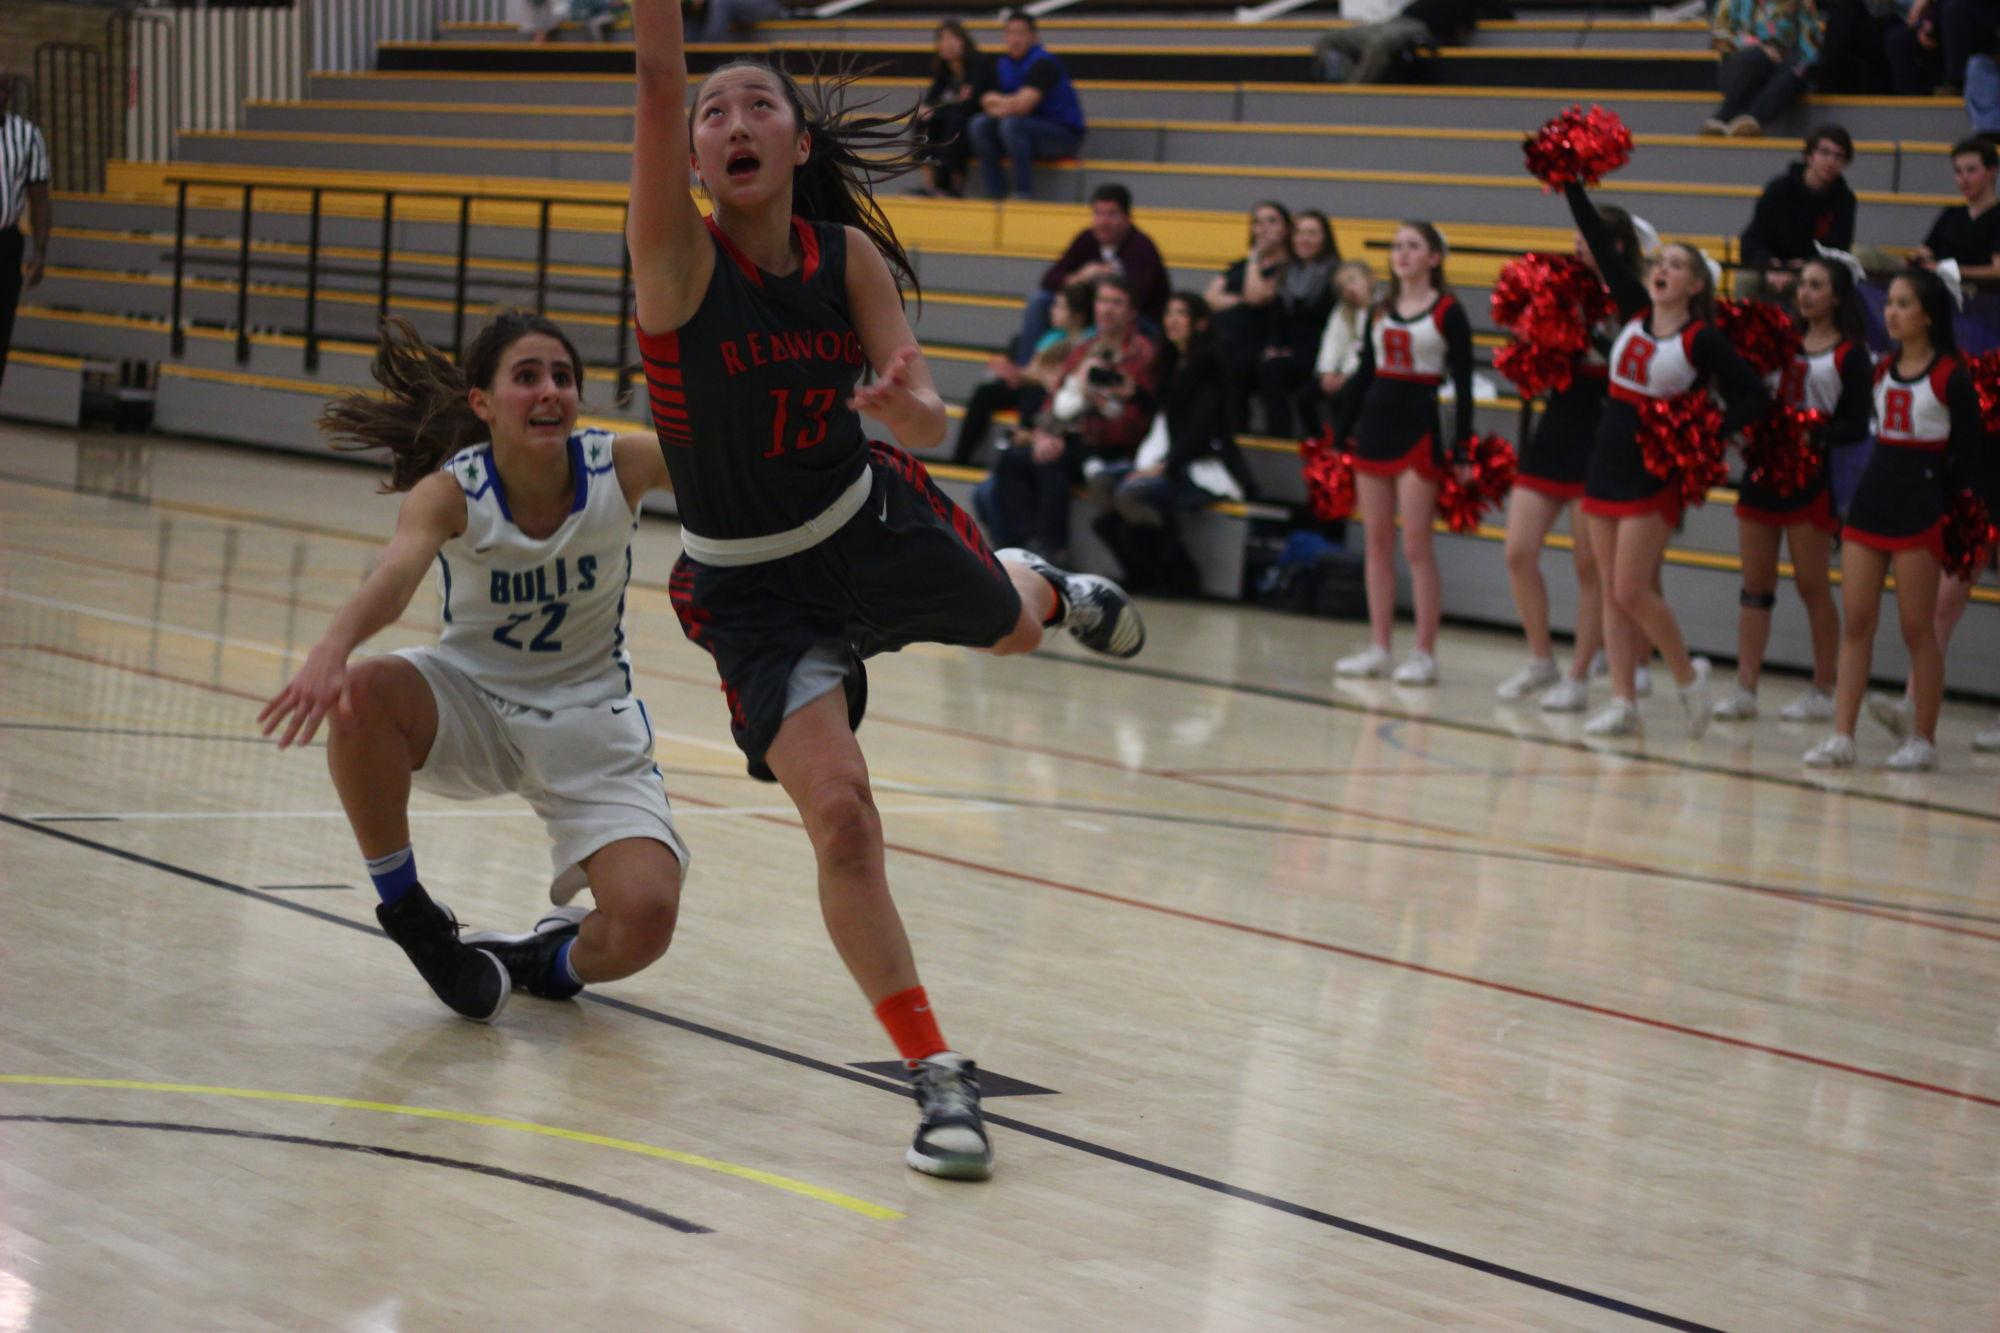 Girls' basketball overpowers Branson with an impressive 66-23 victory